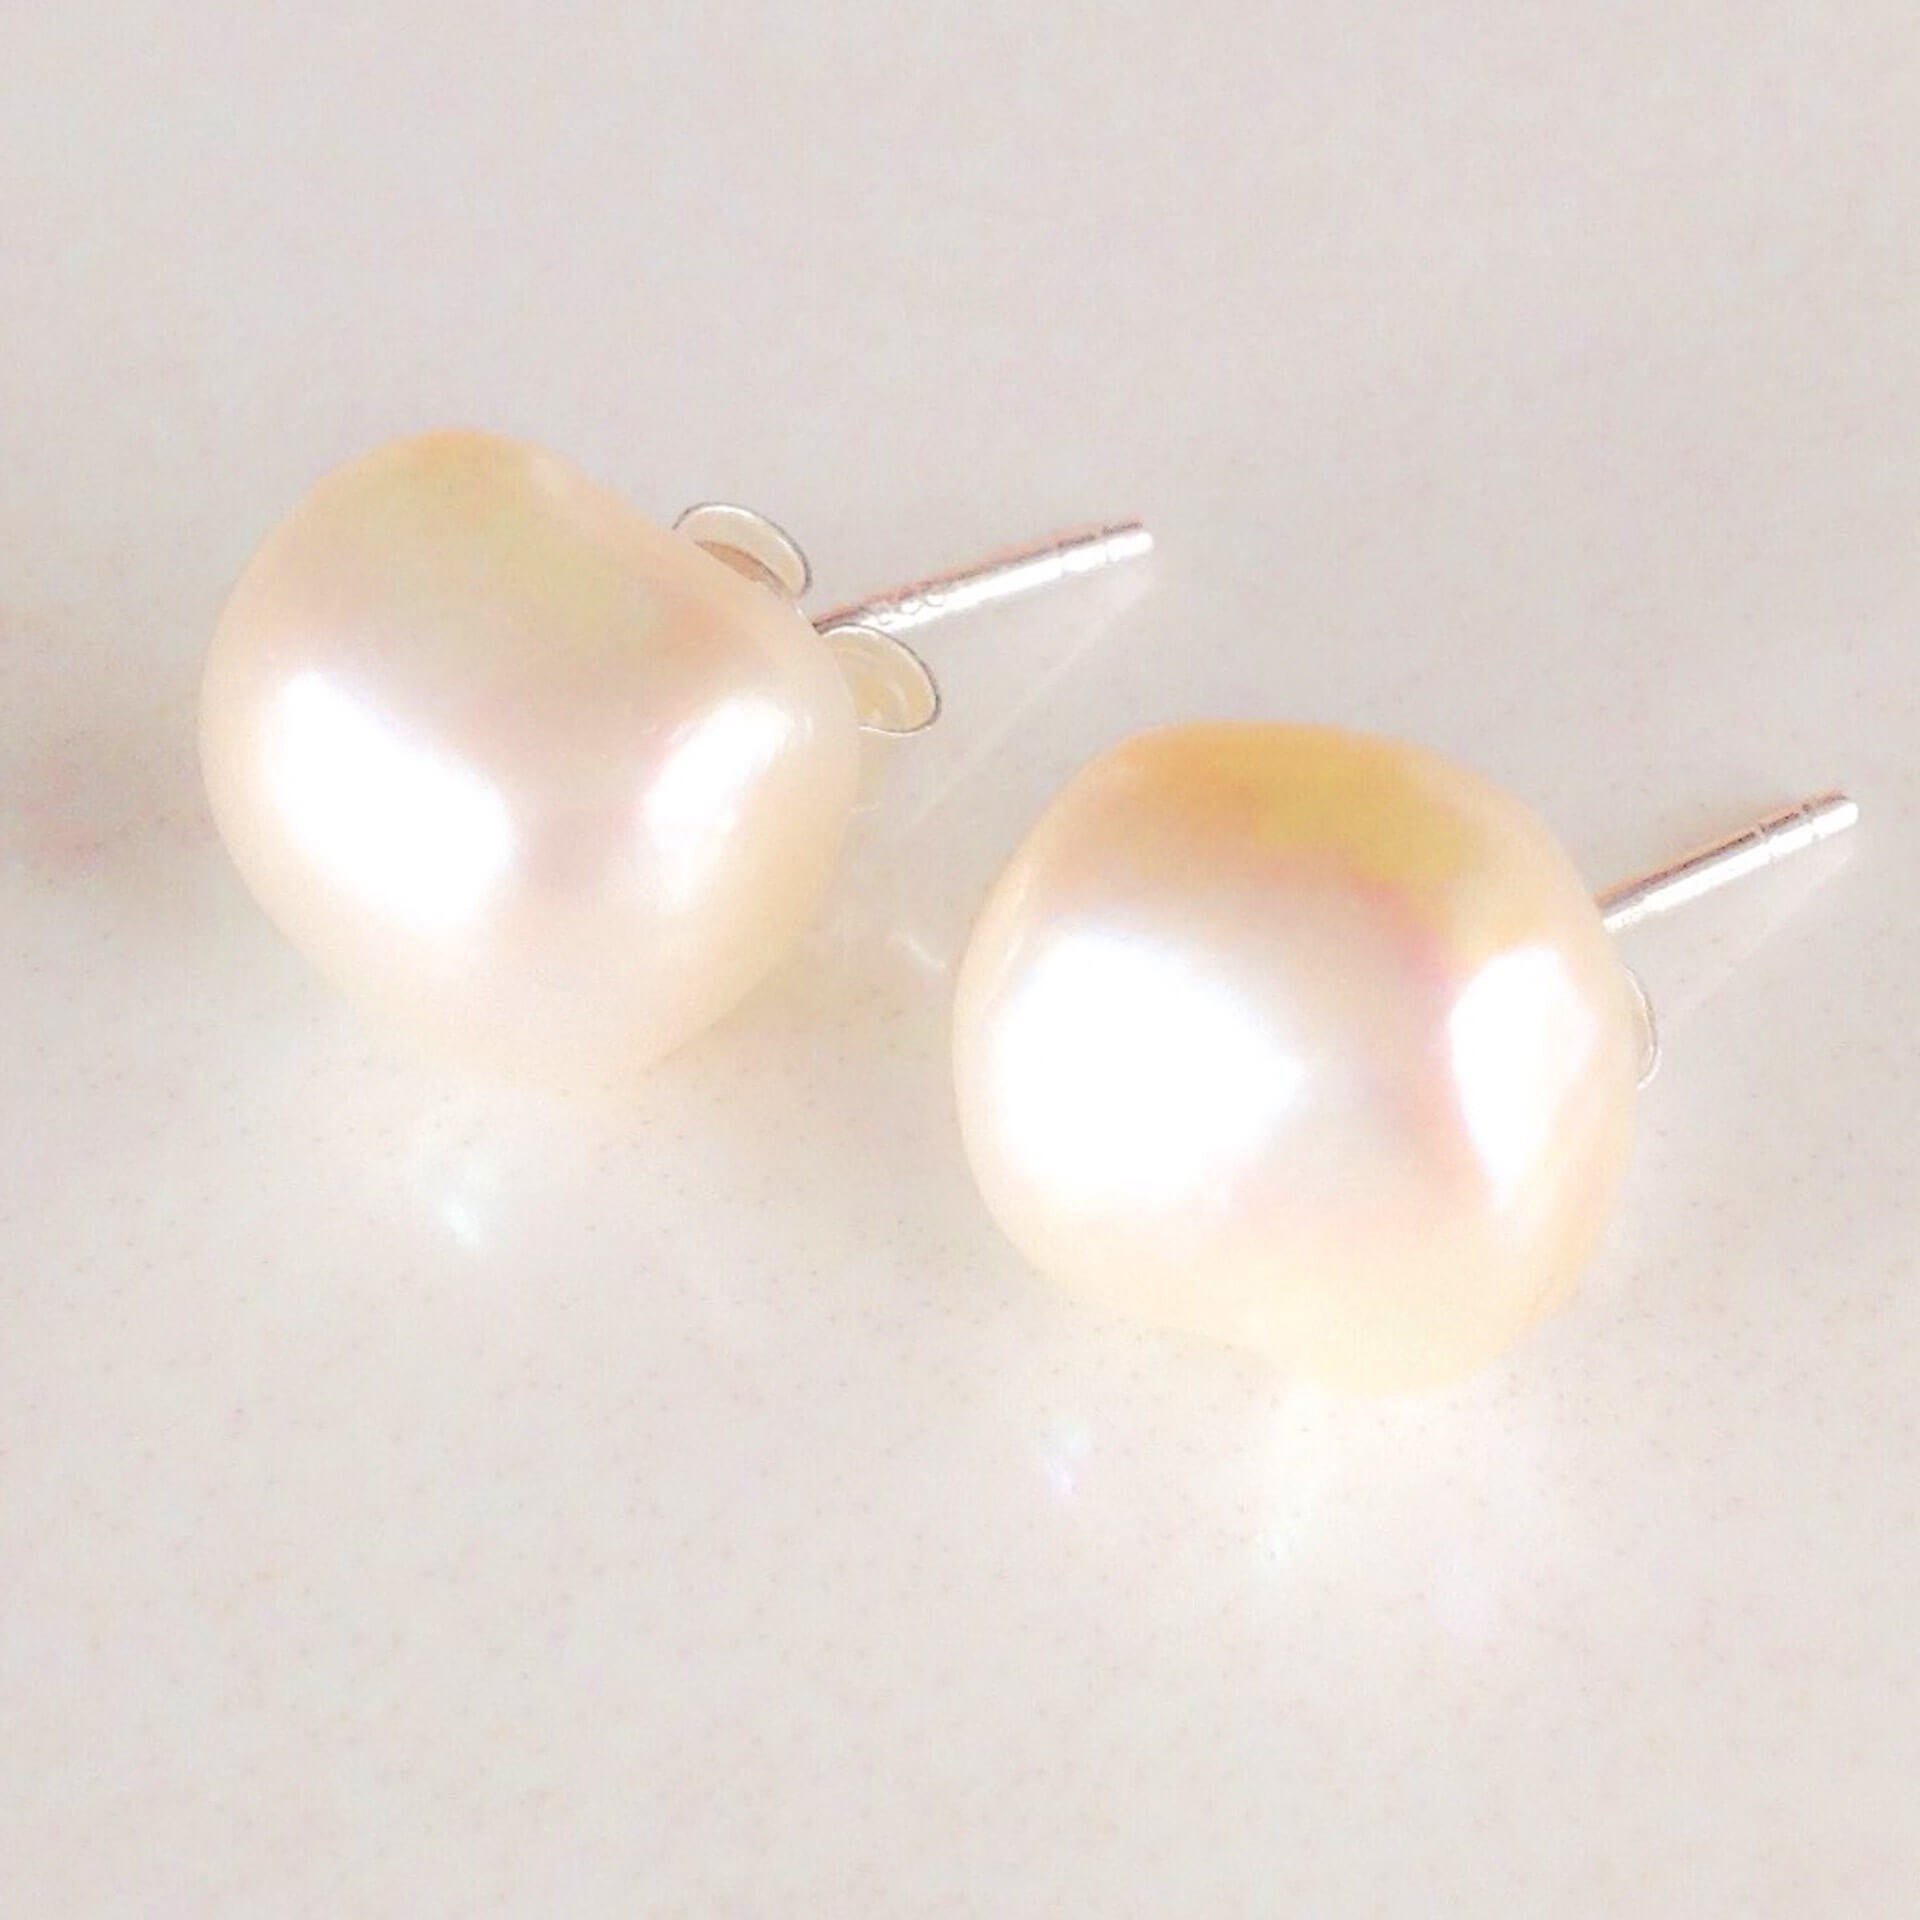 Large Baroque Pearl Stud Earrings